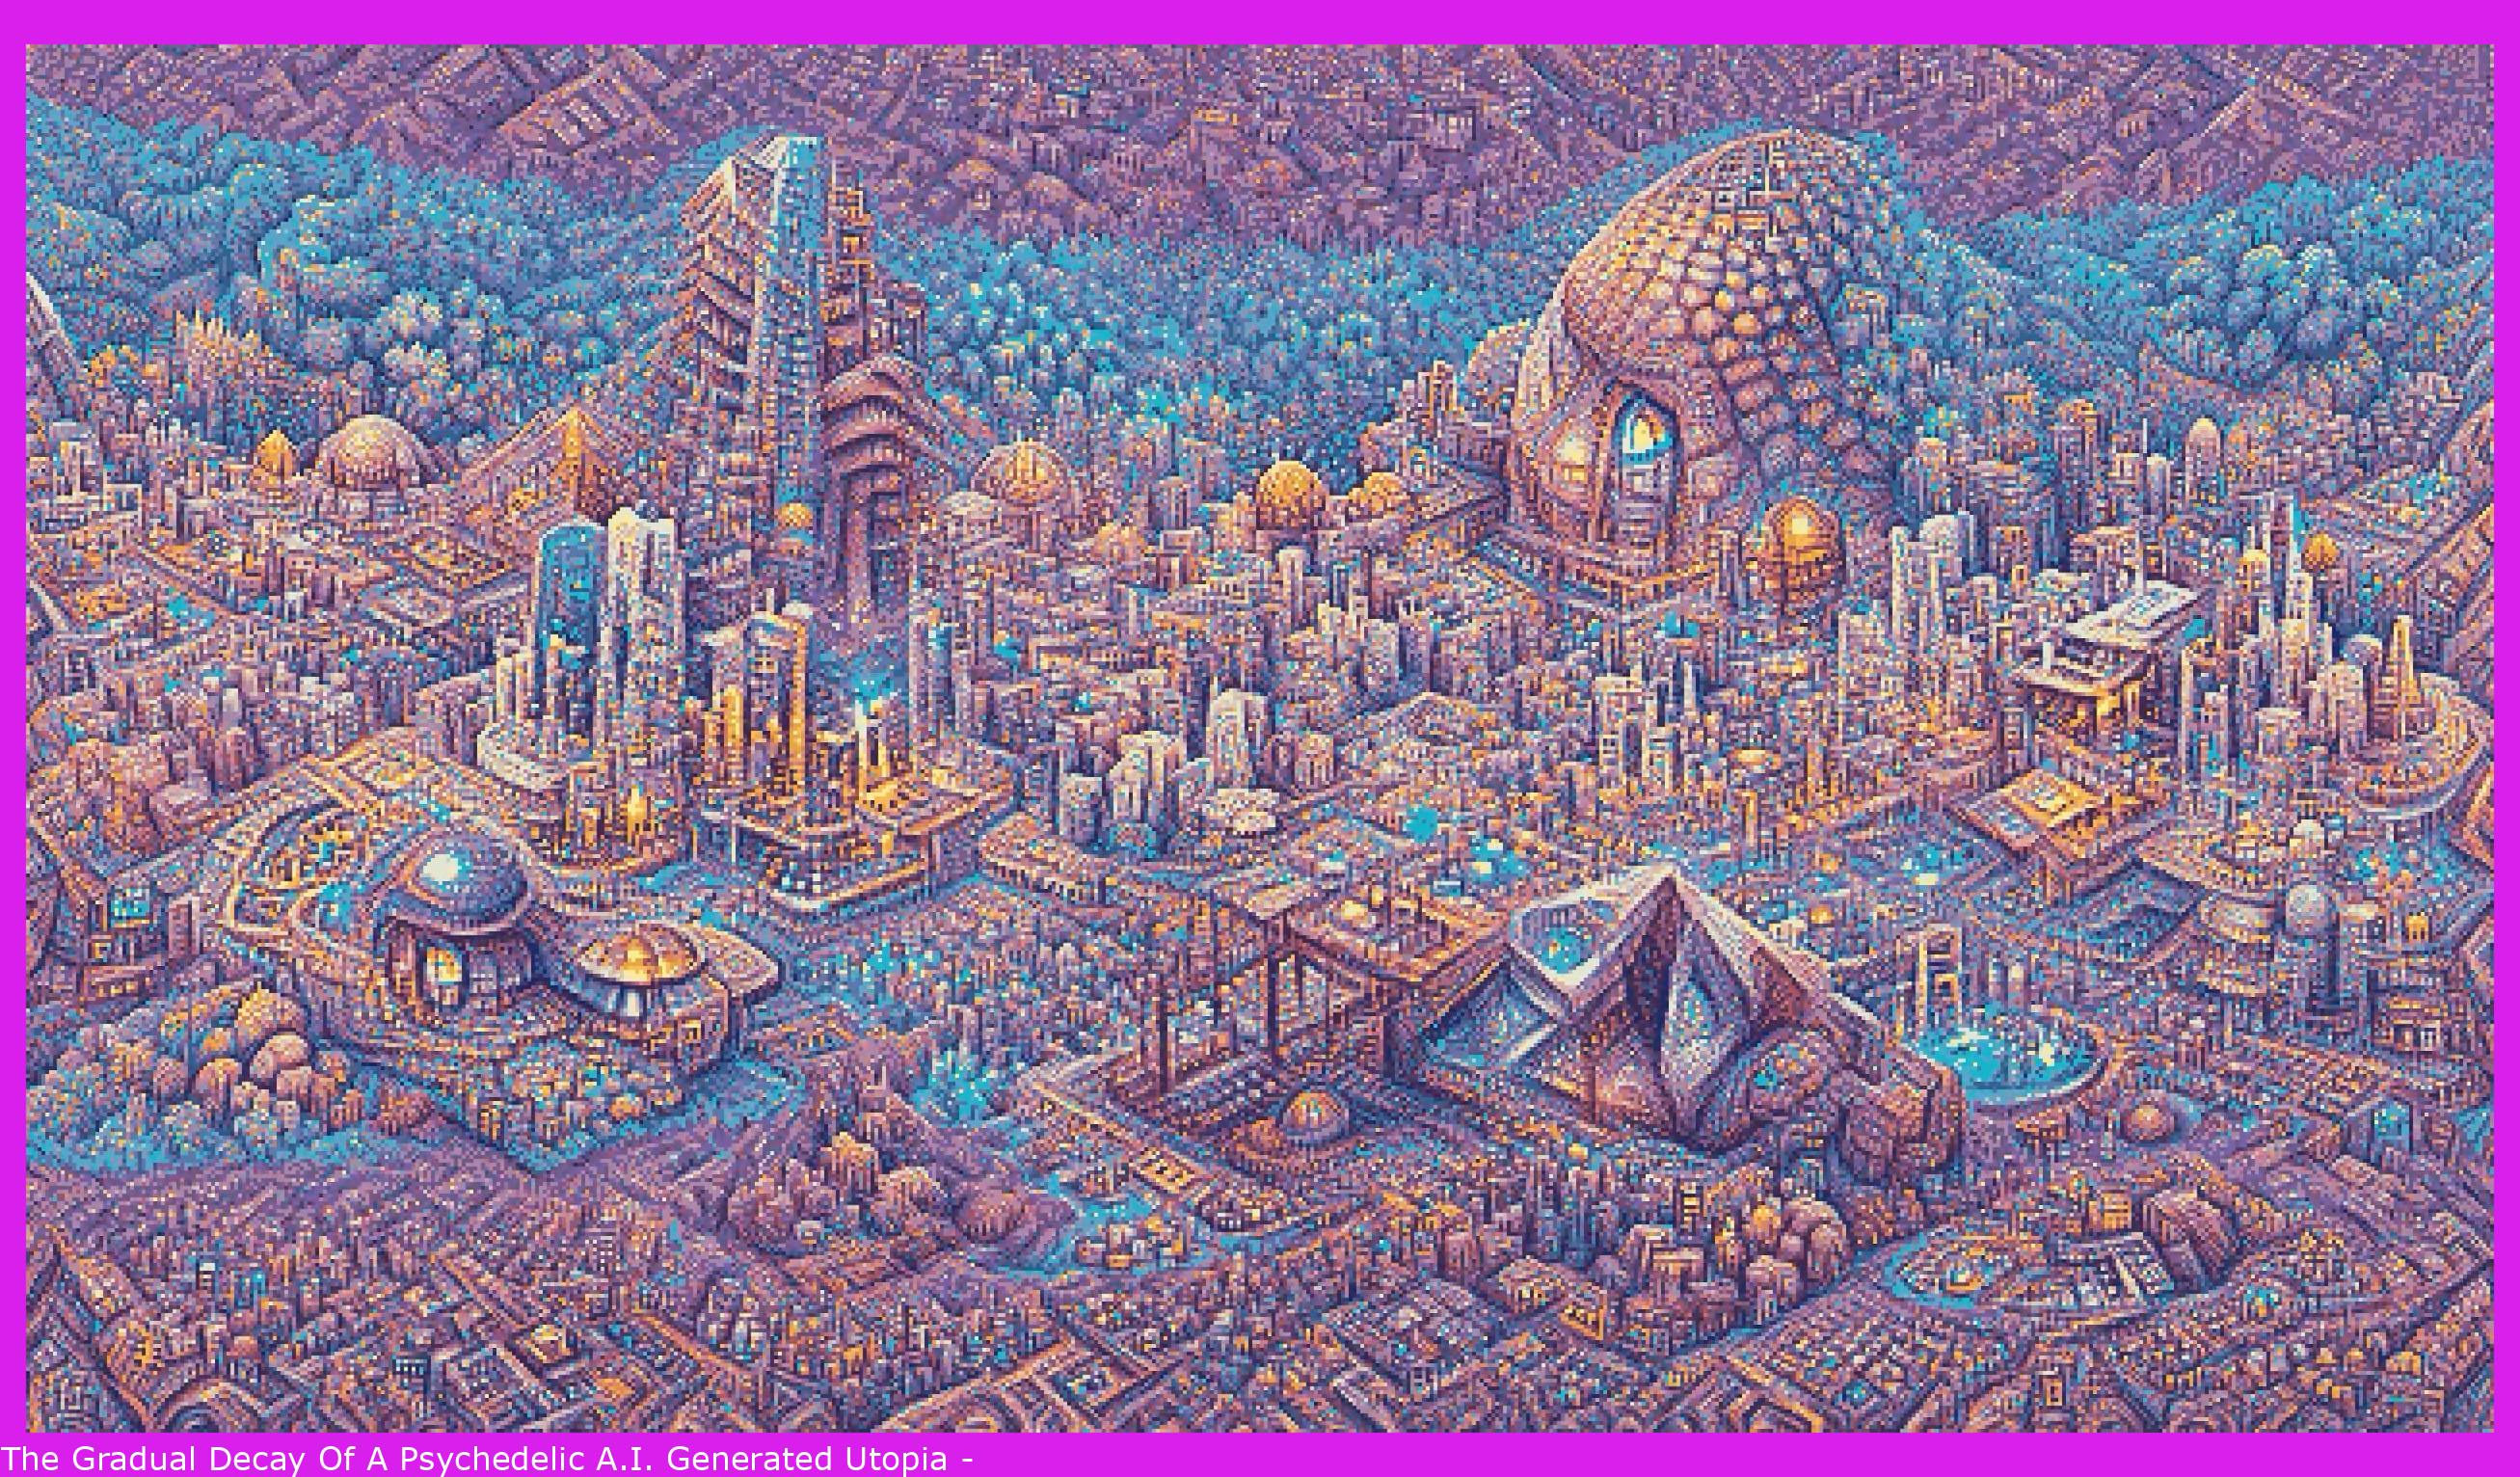 The Gradual Decay Of A Psychedelic A.I. Generated Utopia